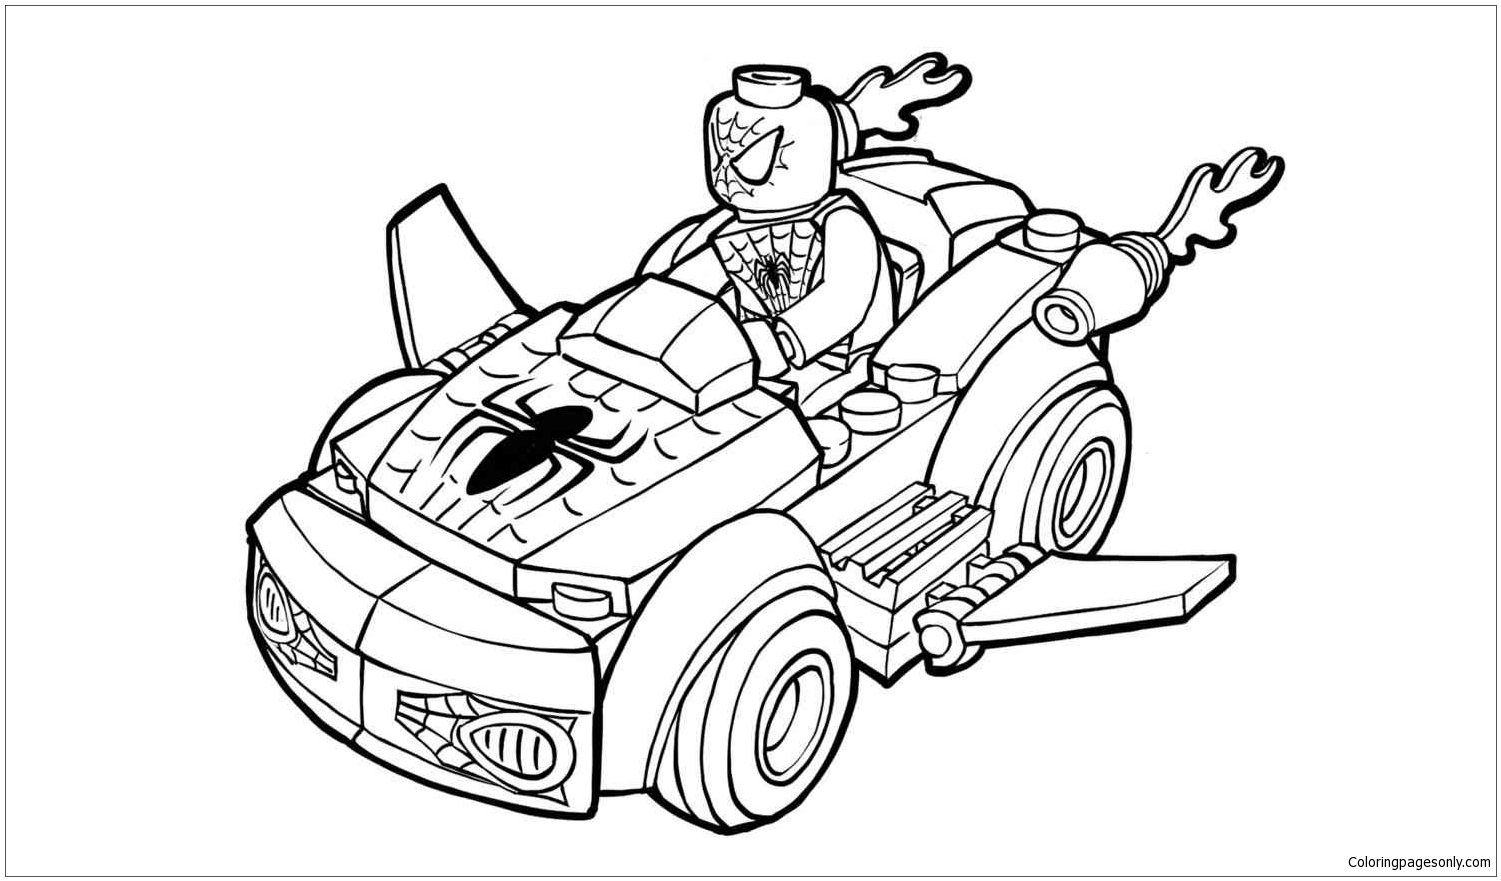 Lego Spiderman Coloring Page - Free Coloring Pages Online